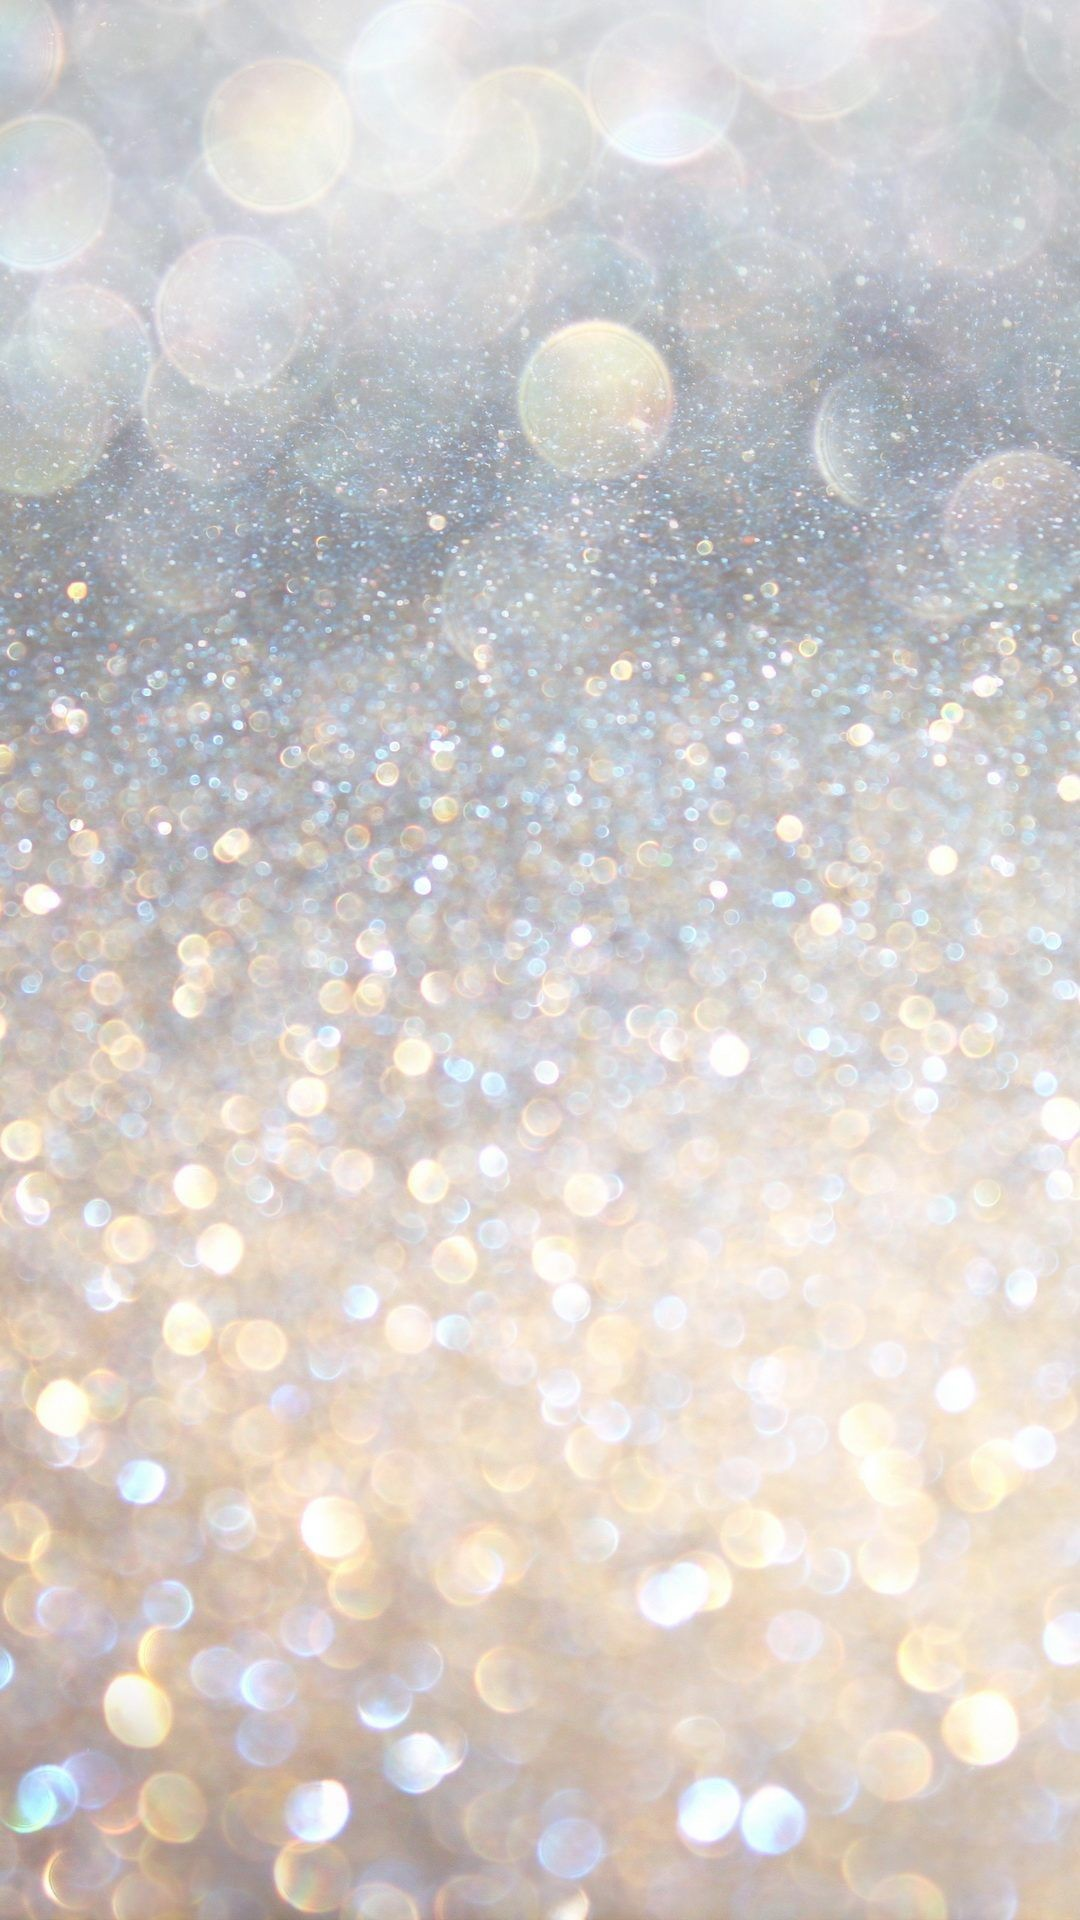 Abstract Abstract Shine iPhone 6 Plus Wallpapers – abstract, background  iPhone 6 Plus Wallpapers